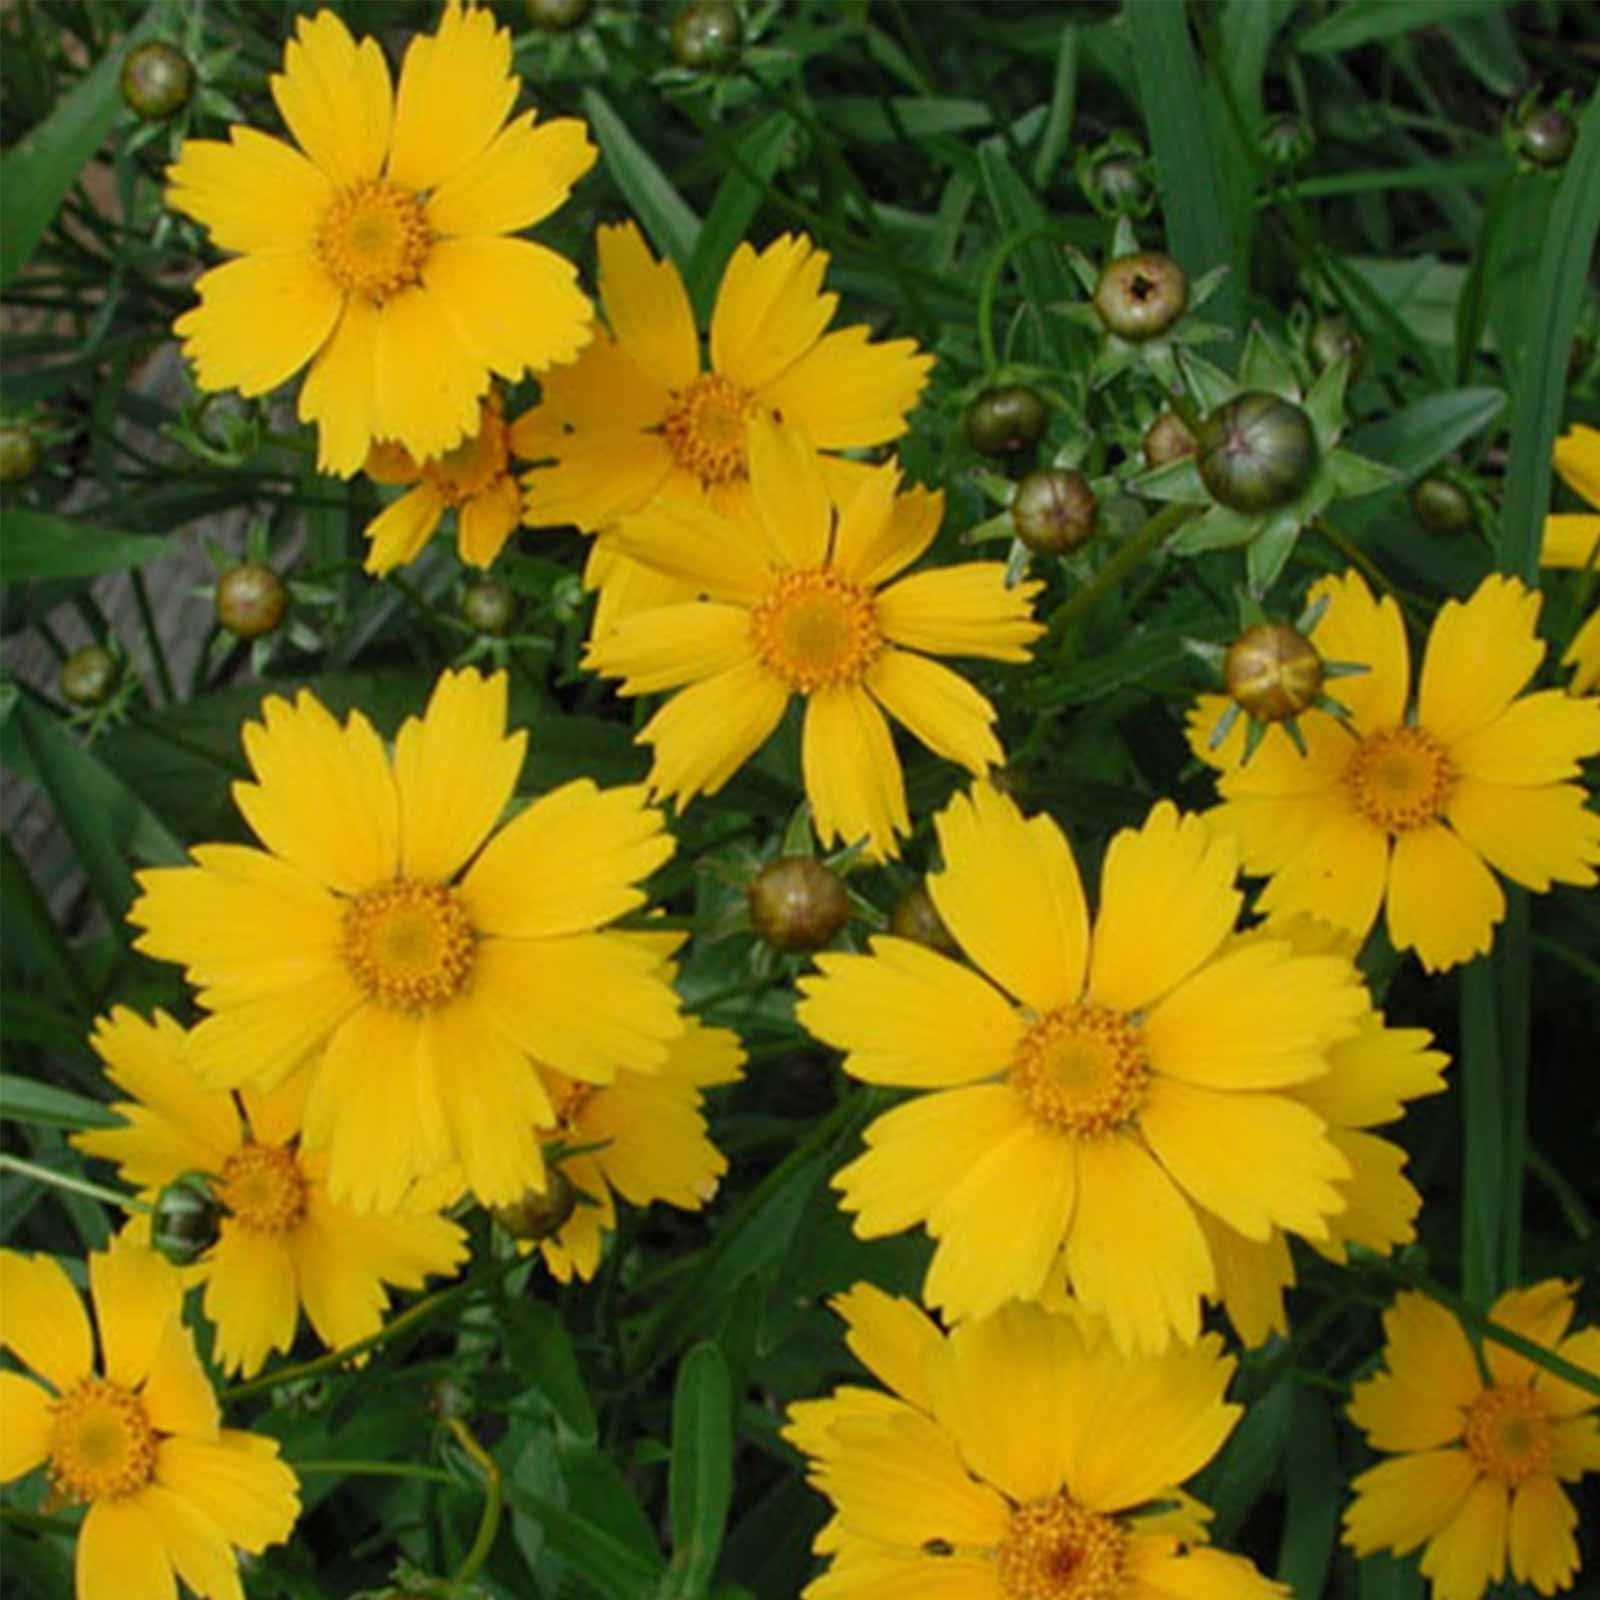 Lanceleaf coreopsis flower garden seeds 4 oz perennial gardening coreopsis lanceolata low to moderate water requirement full sun to partial shade a perennial wild flower with solitary yellow daisy like flower blooming izmirmasajfo